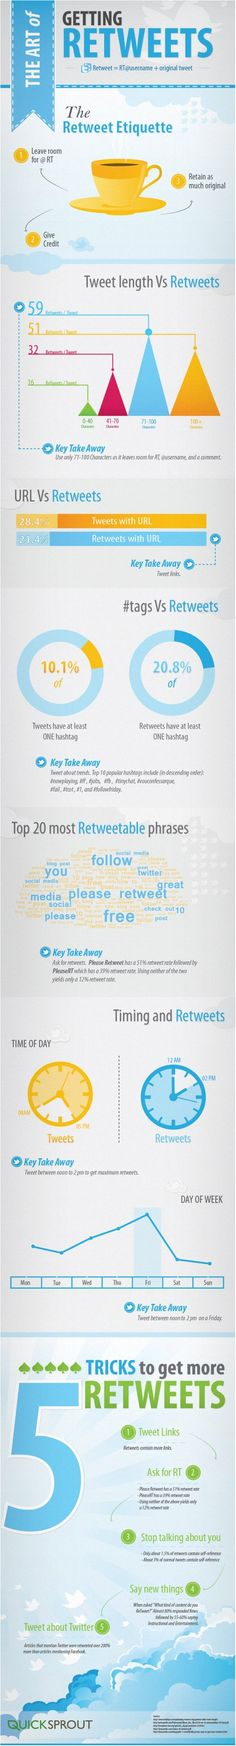 [Infographic] How to increase retweets on Twitter  #Infographic #Twitter #SocialMedia